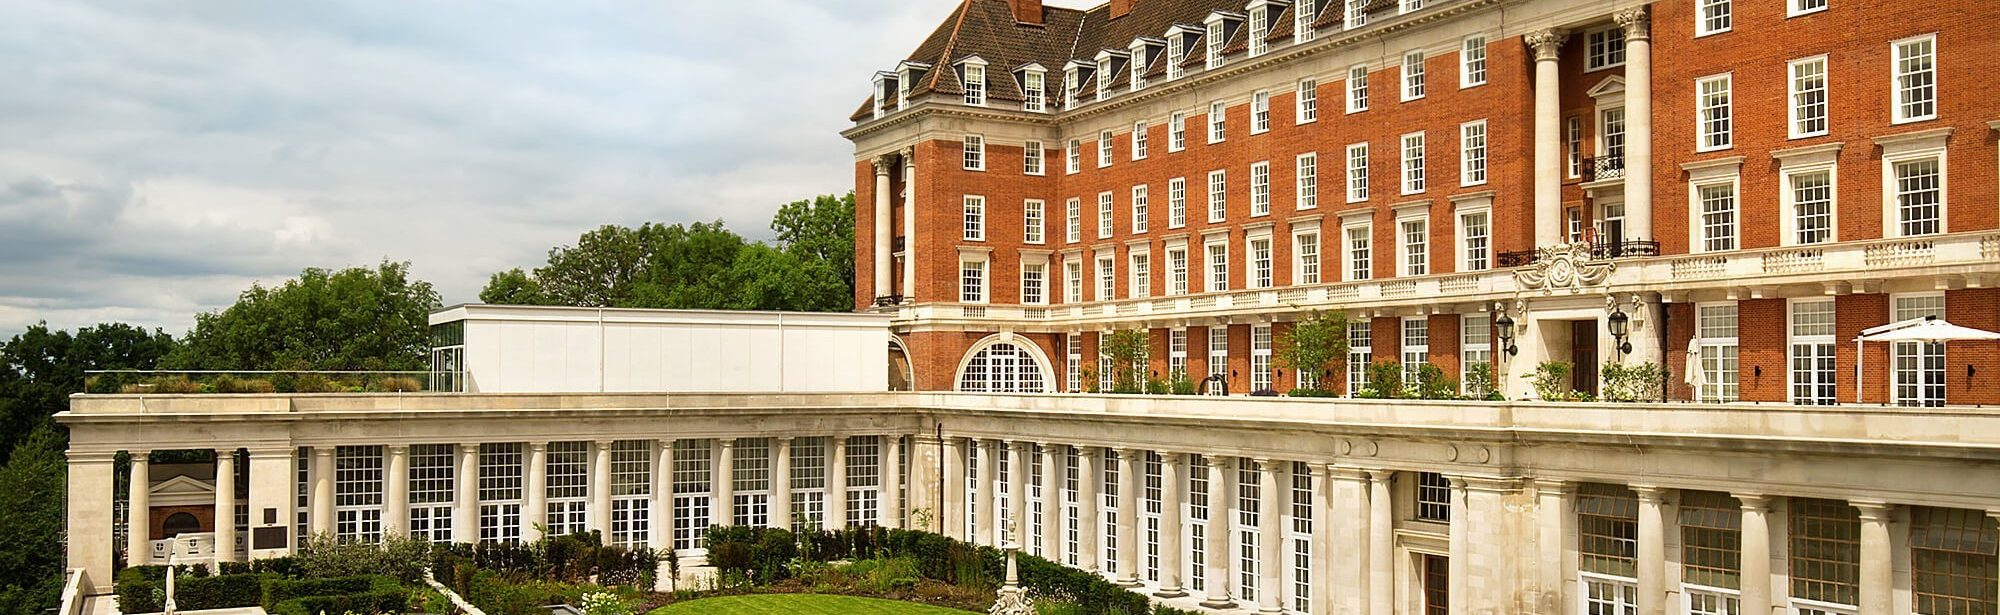 Refurbishing and recreating 850 Heritage Sash Windows for the Star and Garter's £50m restoration project.